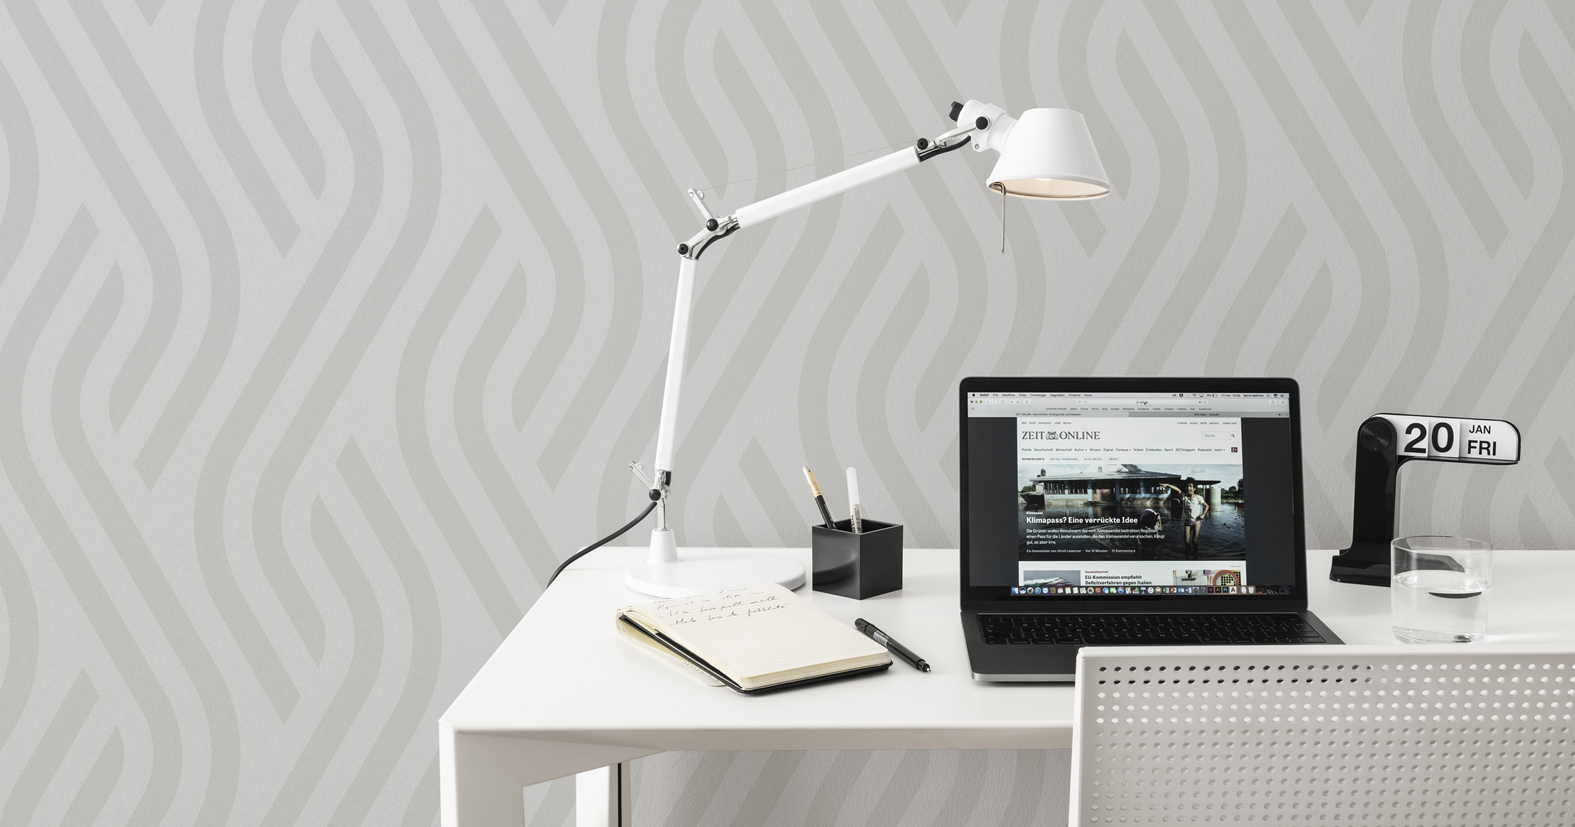 Perfektes Licht für den optimalen Workflow im Homeoffice